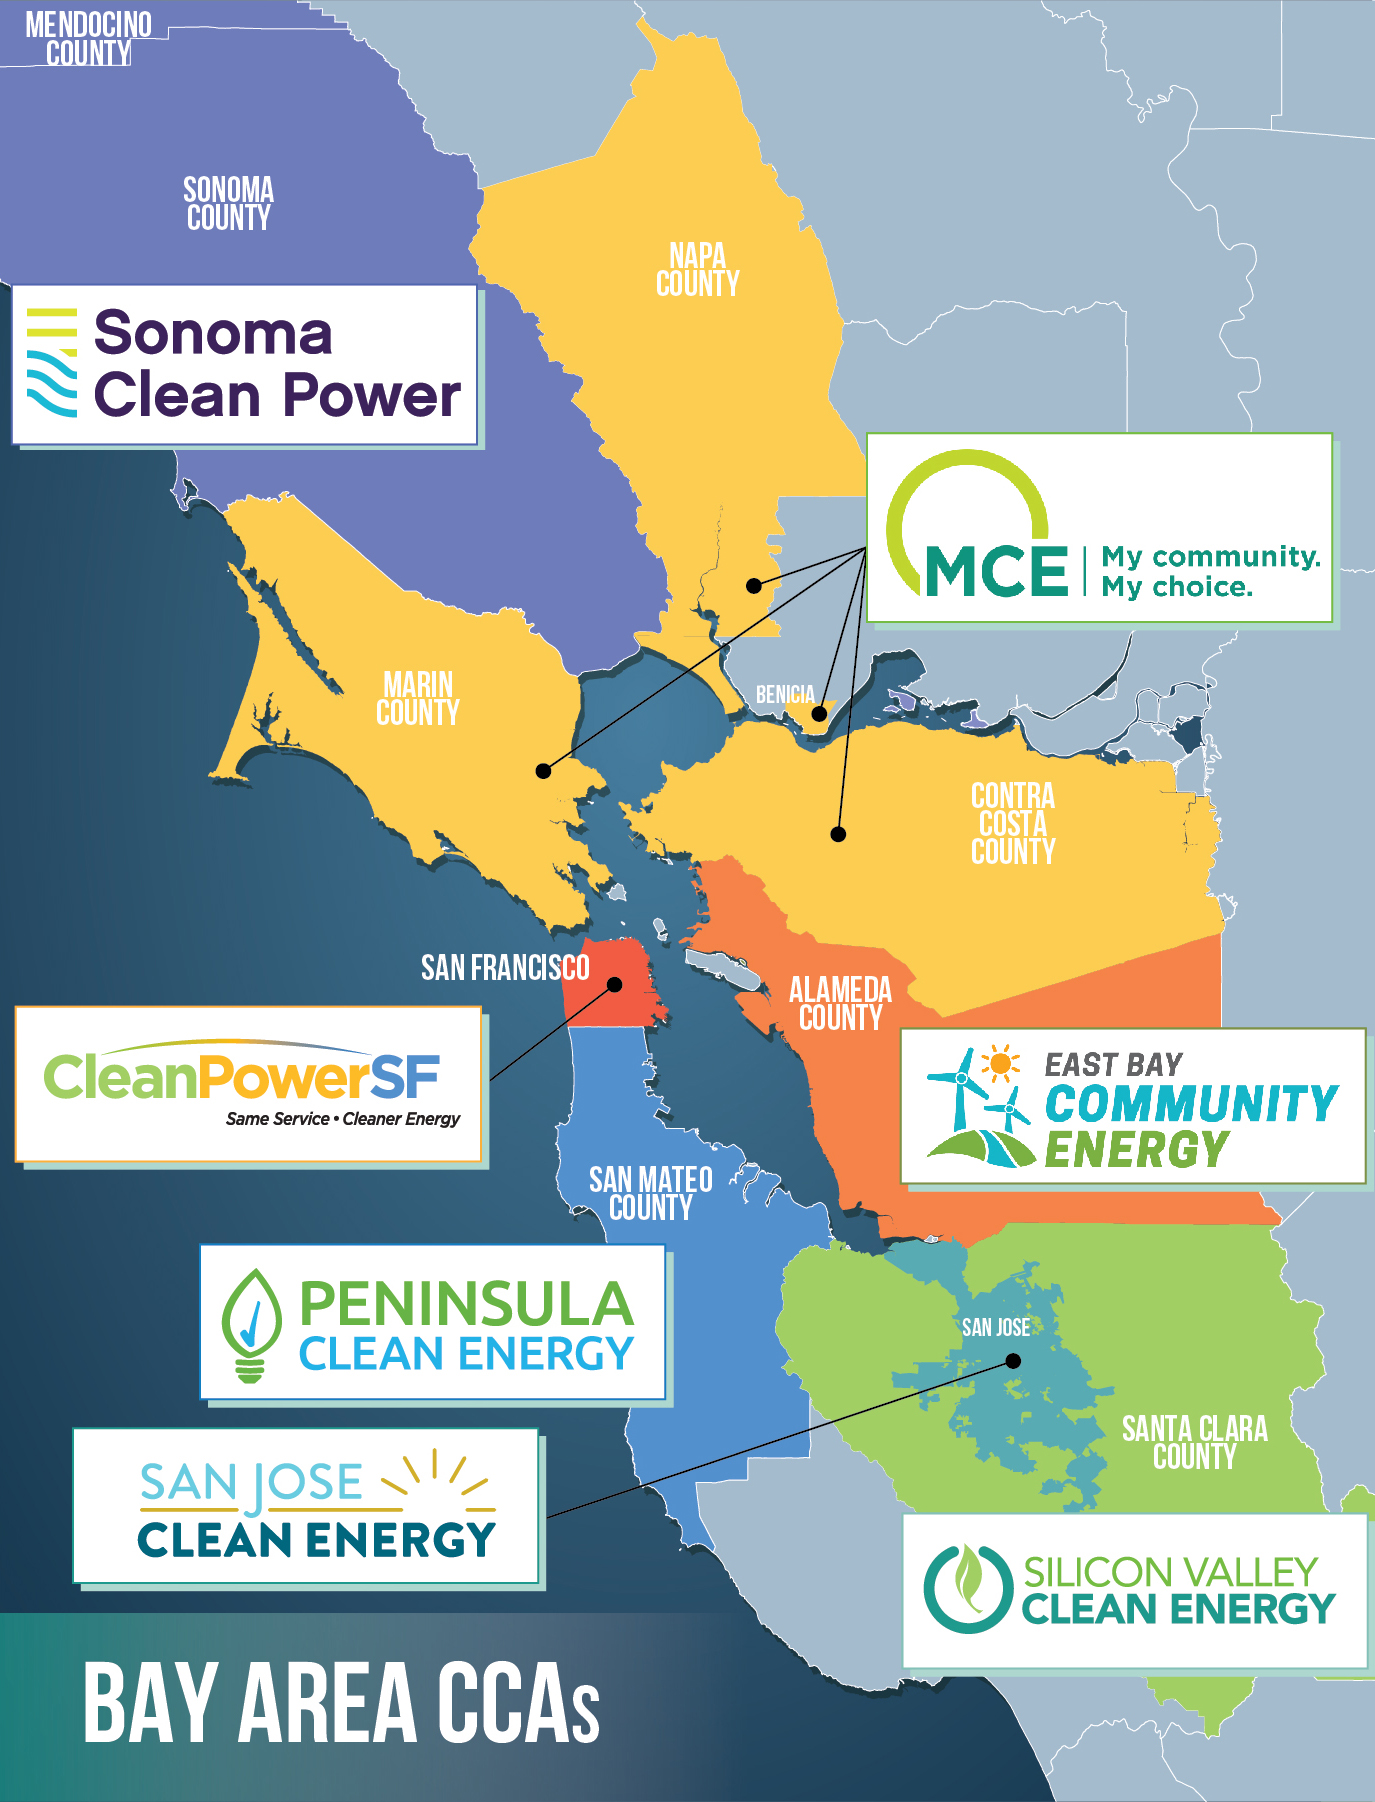 Bay Area Clean Energy Employee Challenge Calcca Alameda contra costa marin napa san francisco san mateo santa clara solano sonoma these nine counties include 101 cities, 7.4 million inhabitants and approximately 7,000 square miles of land. bay area clean energy employee